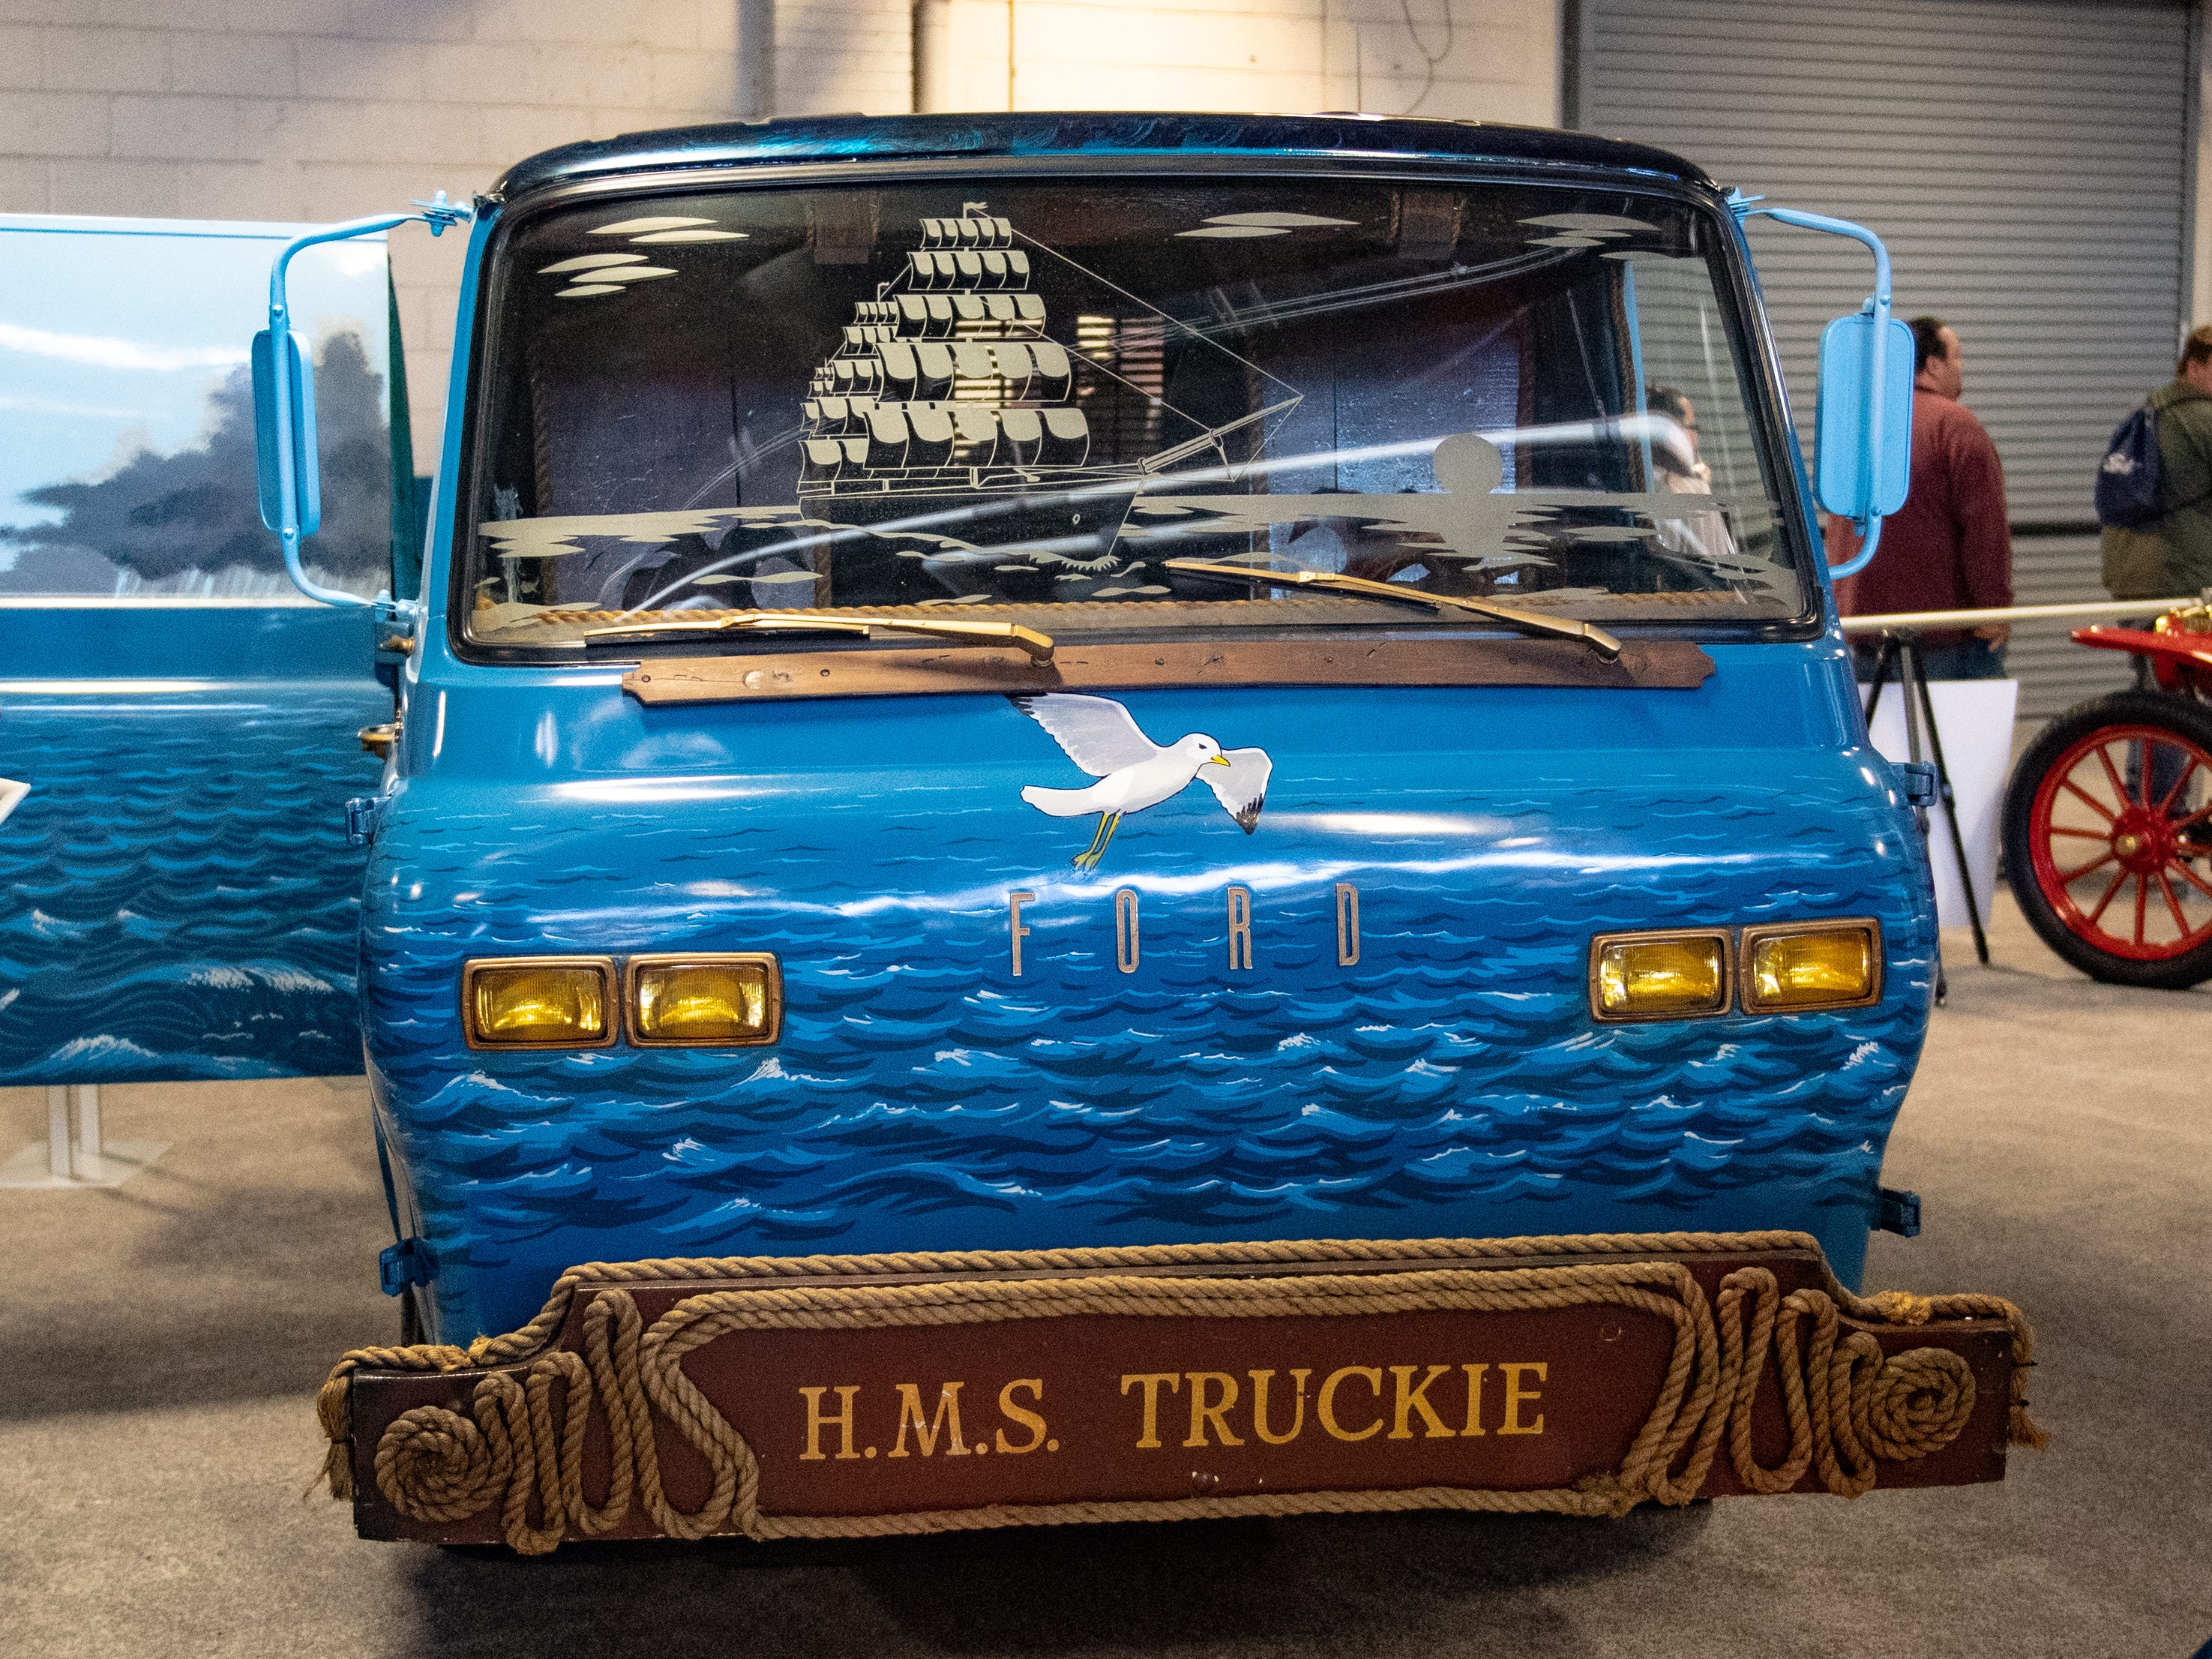 A 1967 Ford Econoline sits on display at the 2019 Pennsylvania Auto Show, Saturday, January 26, 2019 at the Pennsylvania Farm Show Complex & Expo Center. The auto show continues on Sunday from 10 a.m. to 5 p.m.